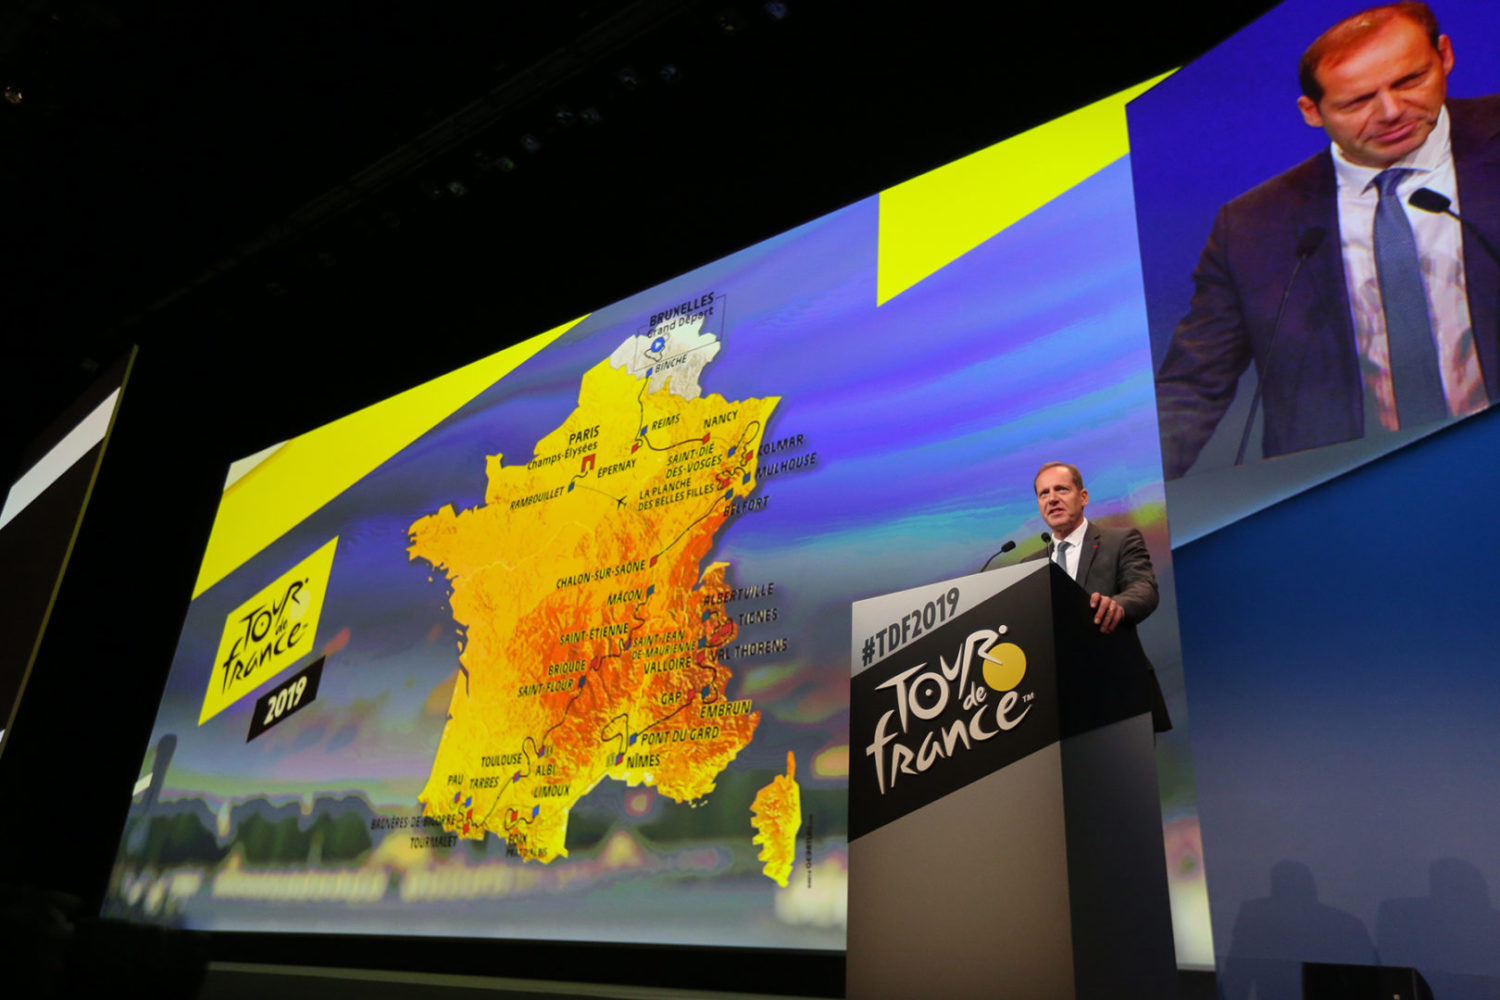 Presentation du parcours du Tour de France 2019 - 25/10/2018 : Christian Prudhomme